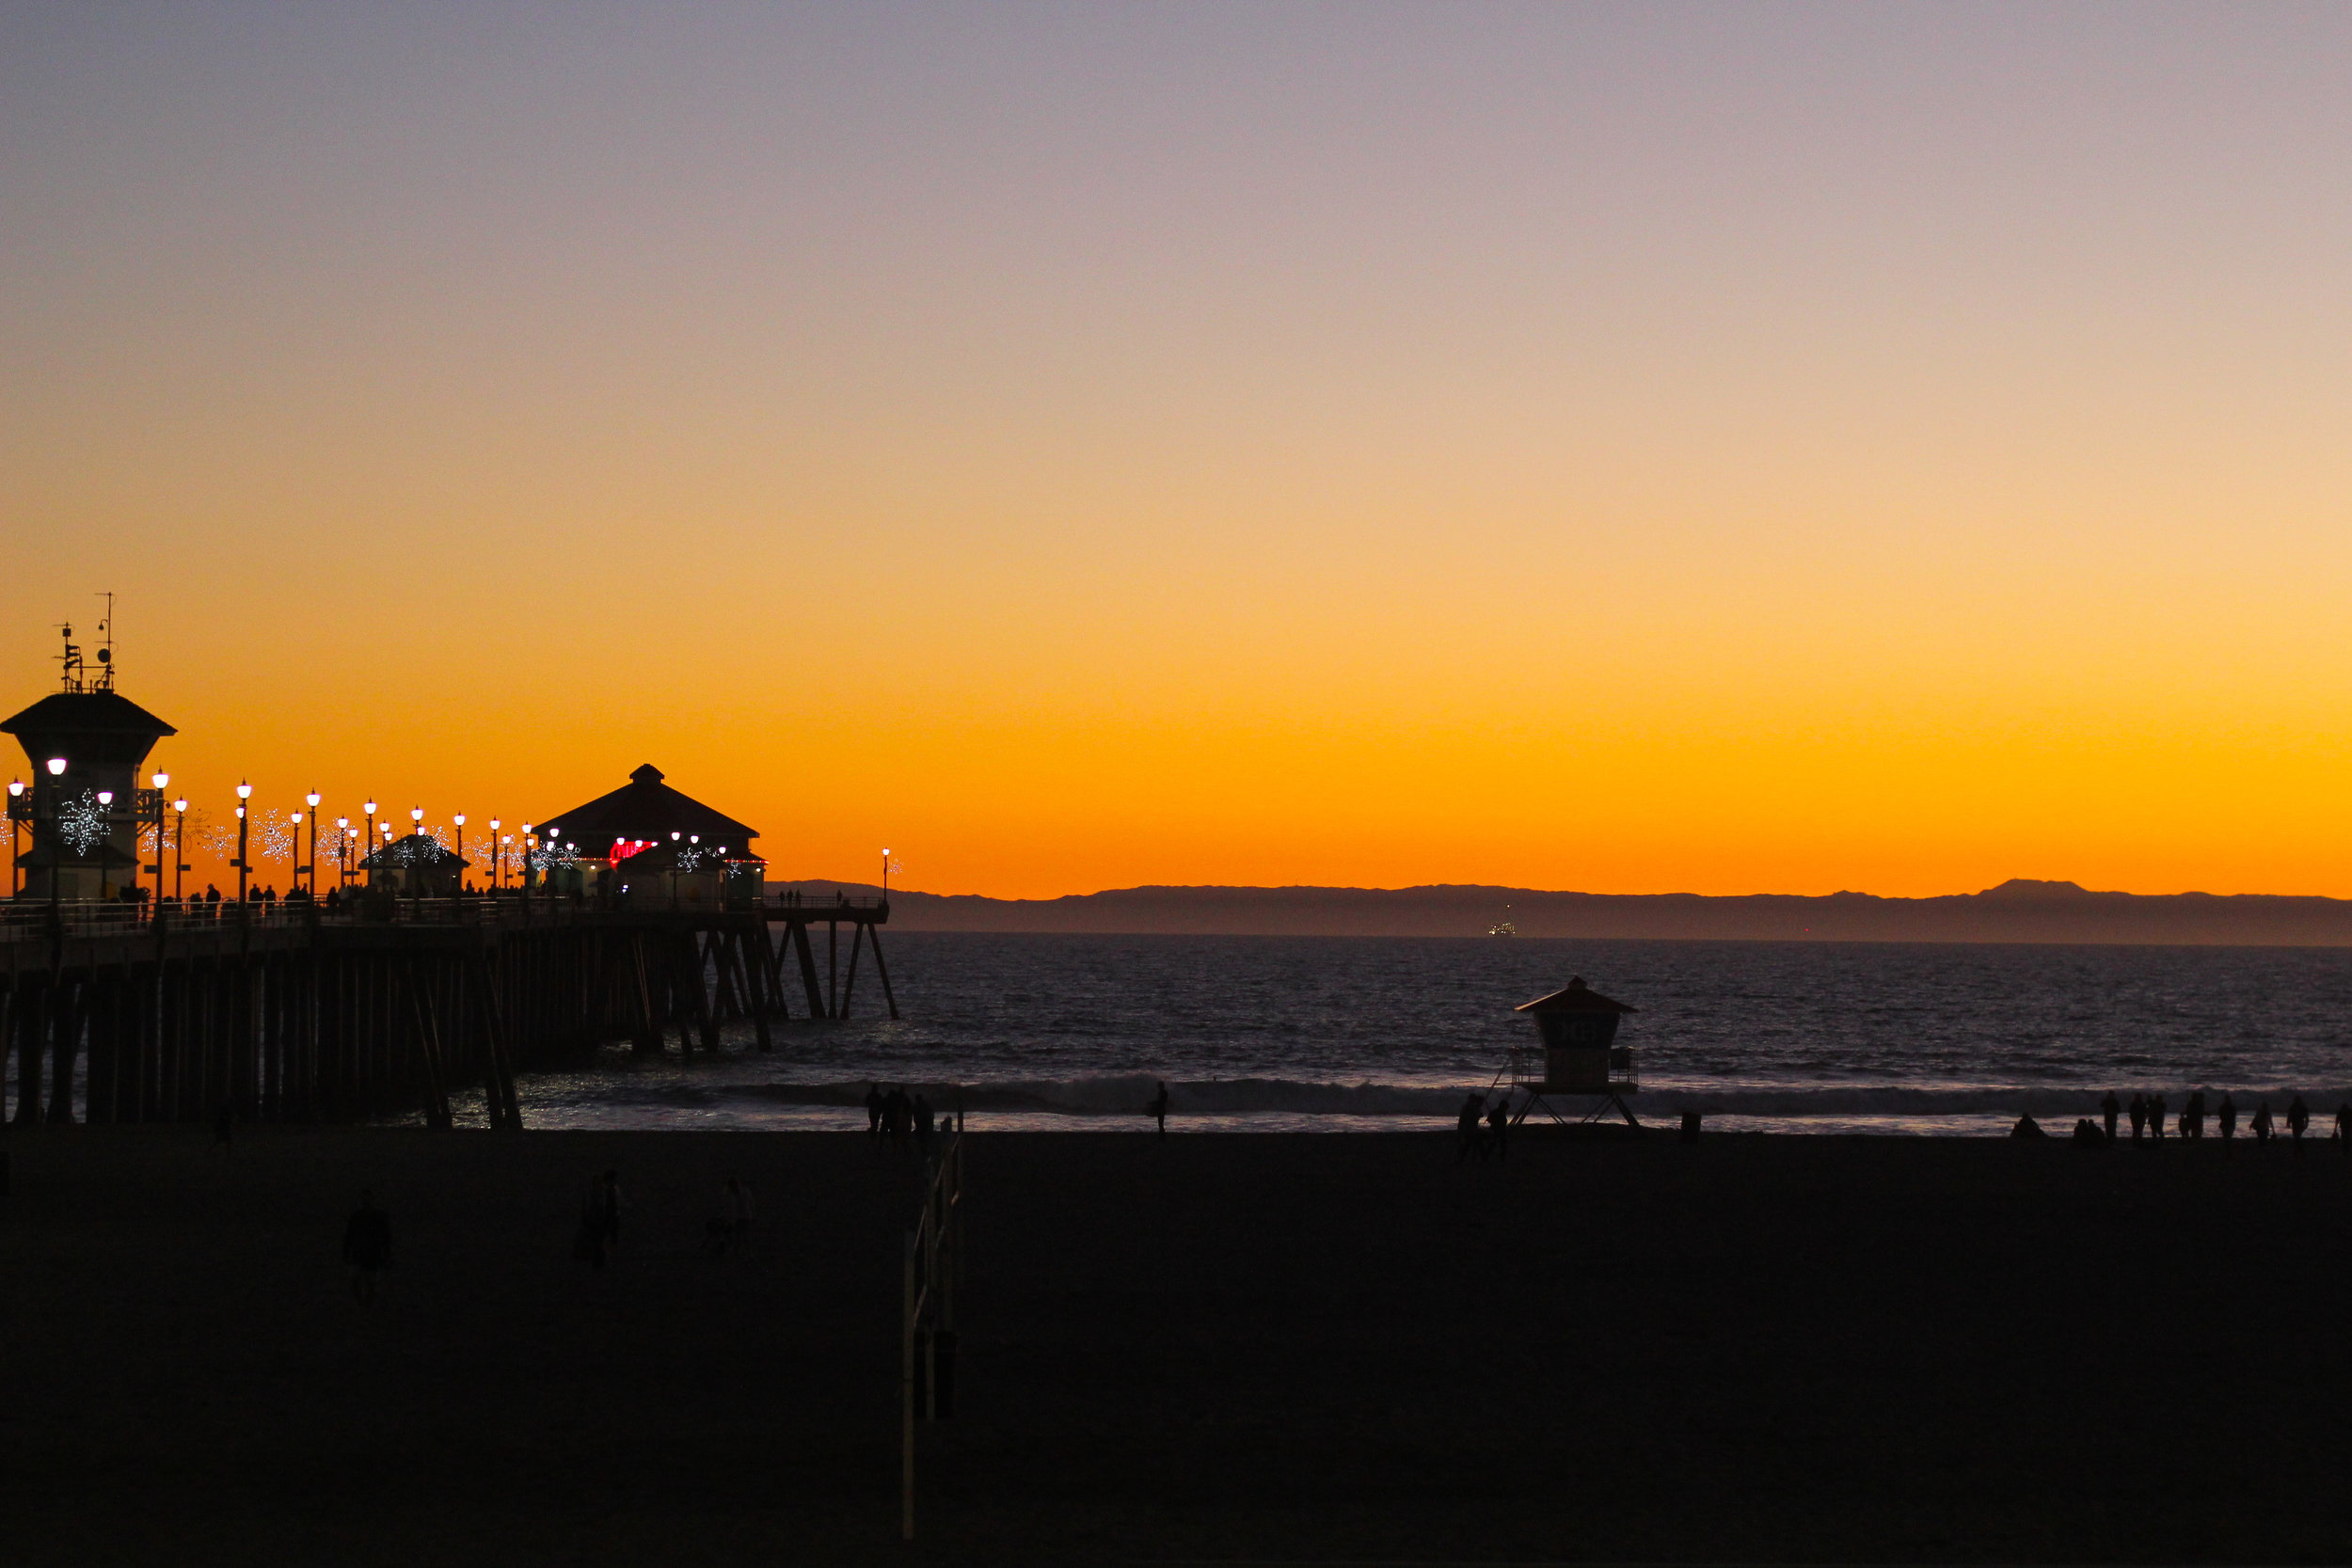 Sunset in December at Huntington Beach, California.